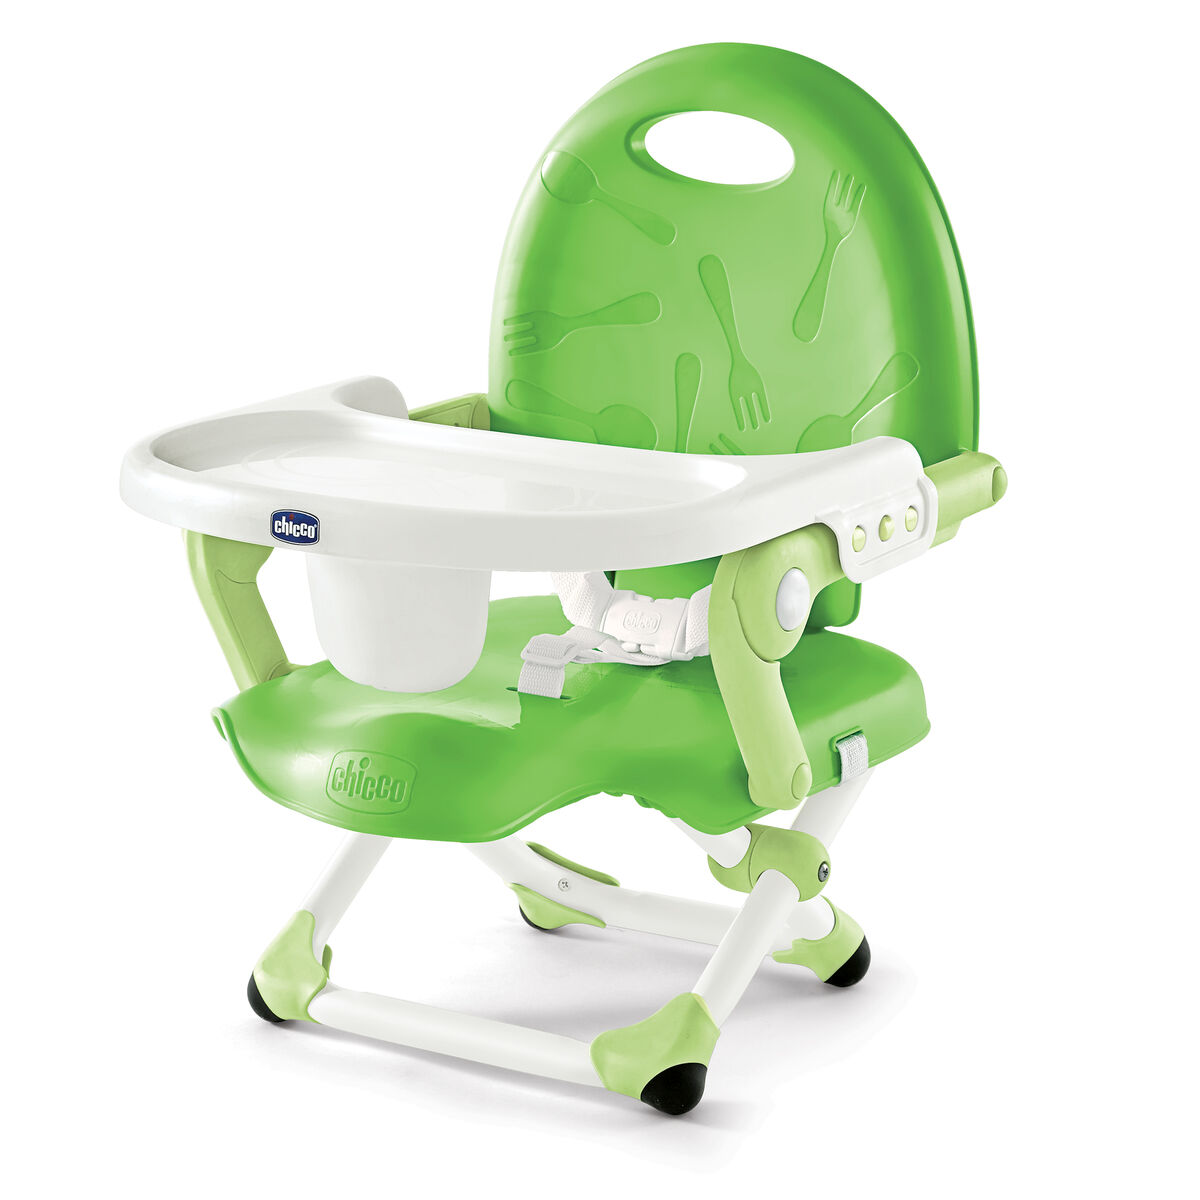 Chicco Chicco Pocketsnack Booster Seat Green